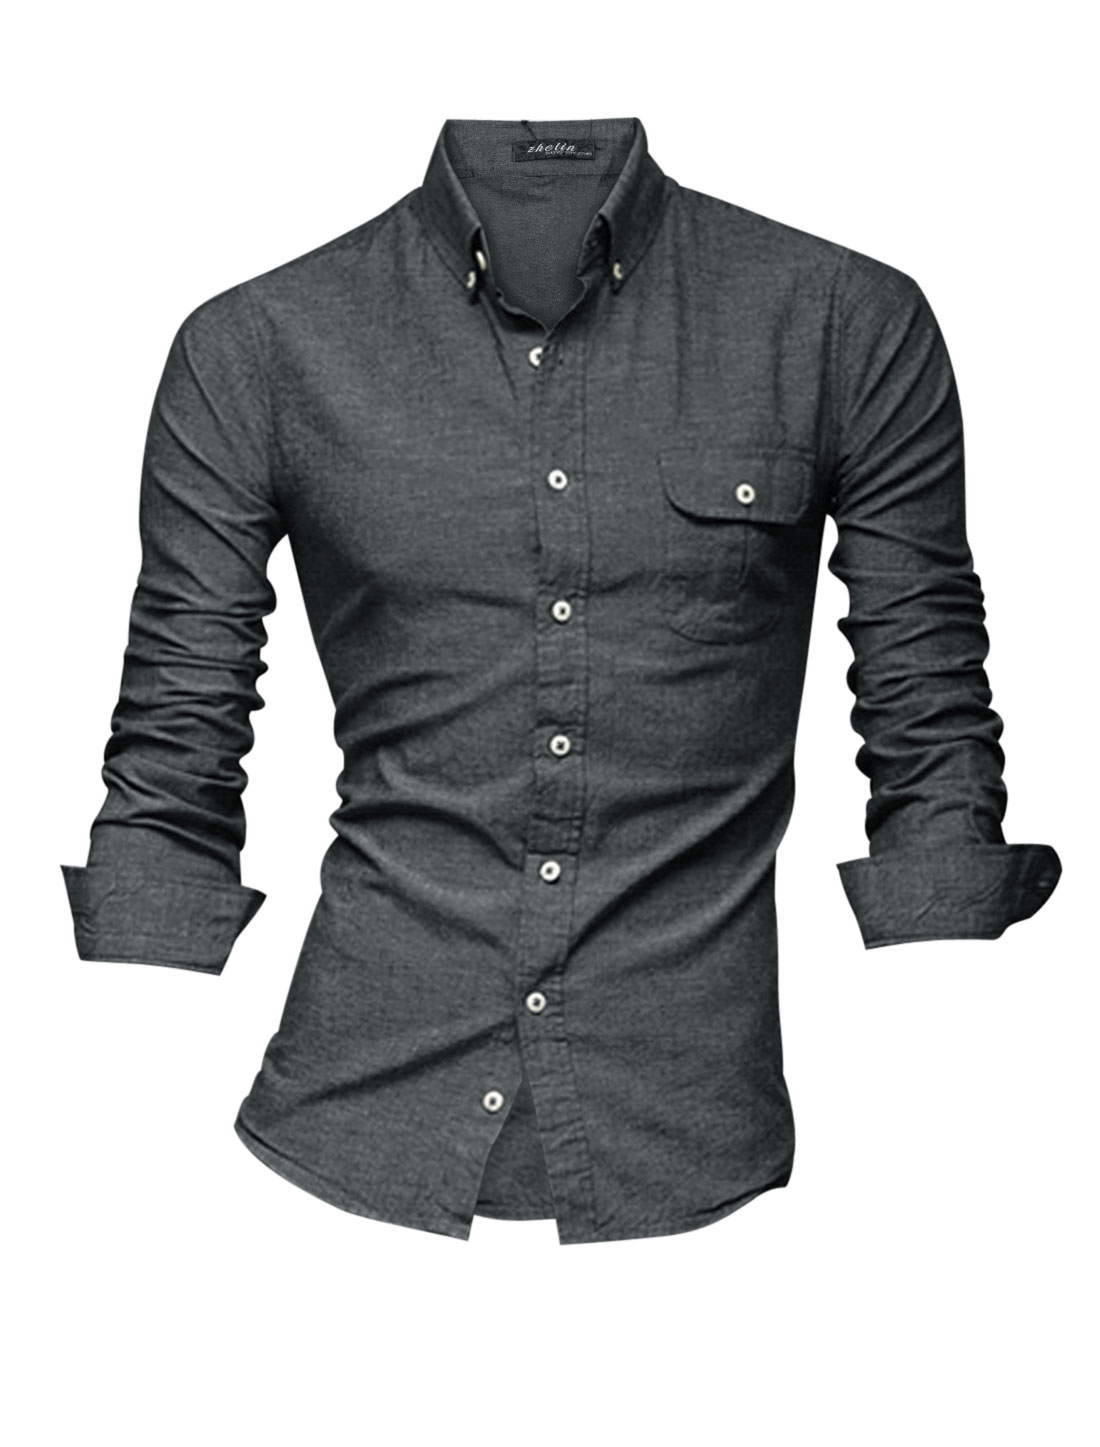 Men Point Collar Single Breasted One Chest Pocket Casual Shirt Dark Gray M